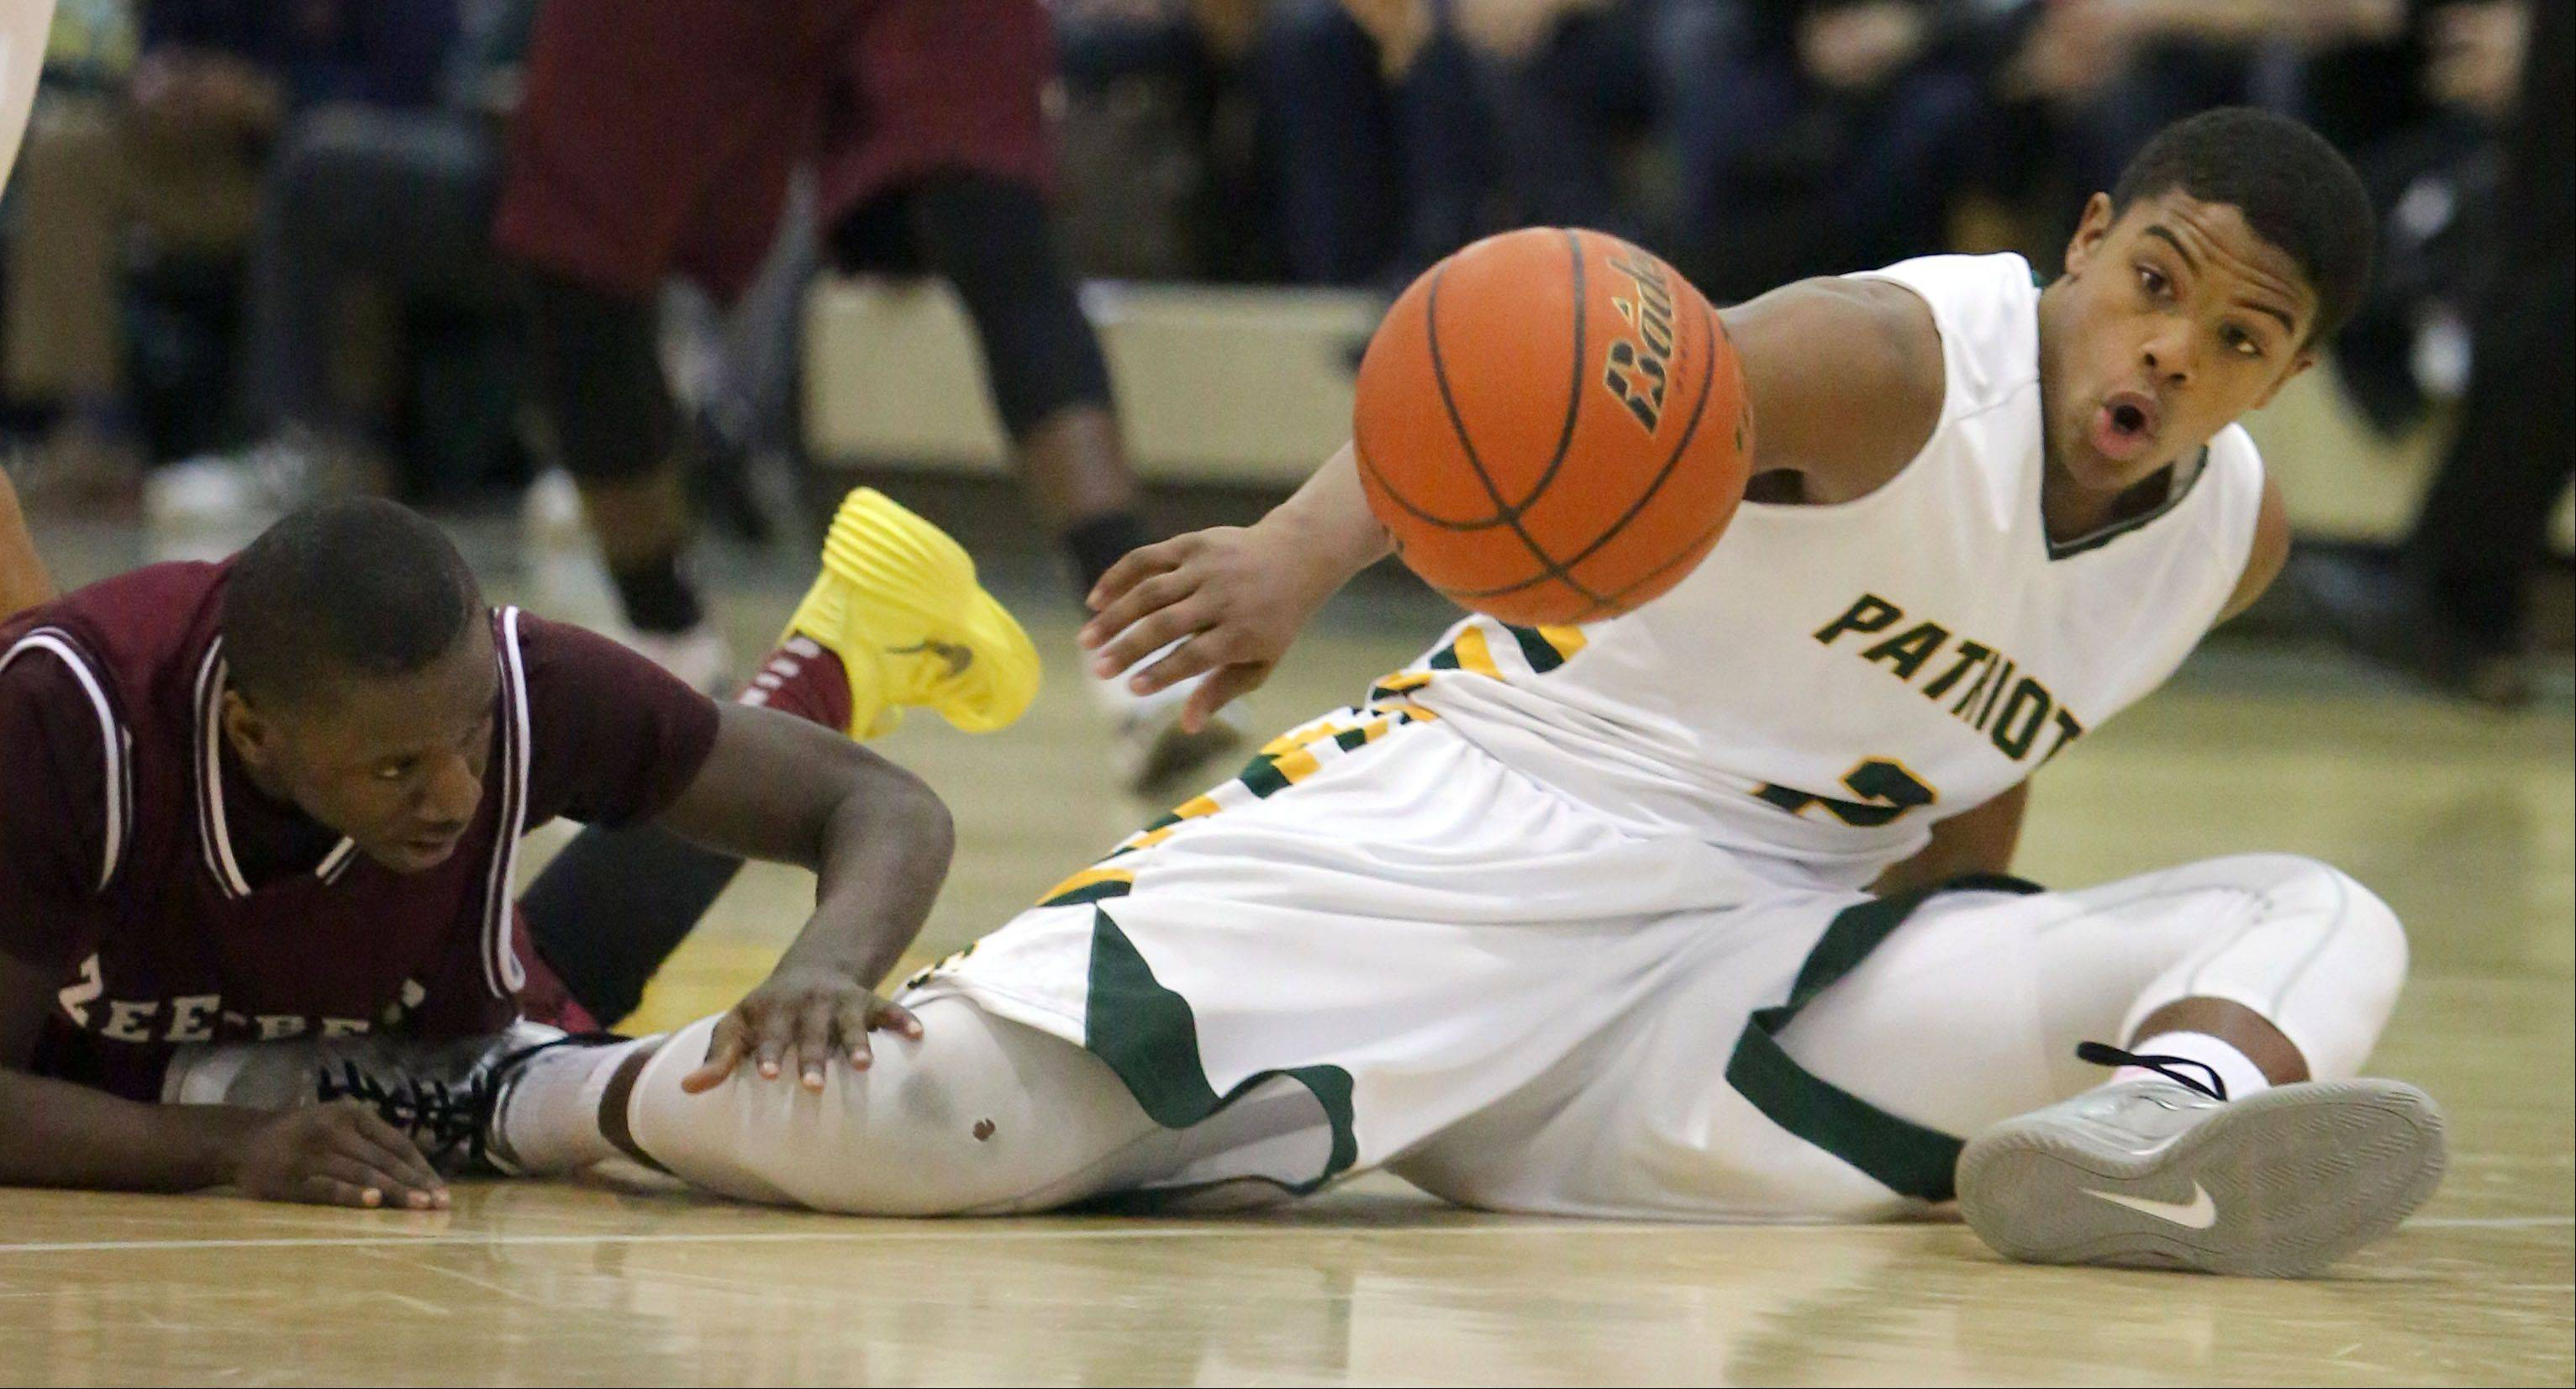 Stevenson's Cameron Green, right, and Zion-Benton's Maurice Young go for a loose ball.